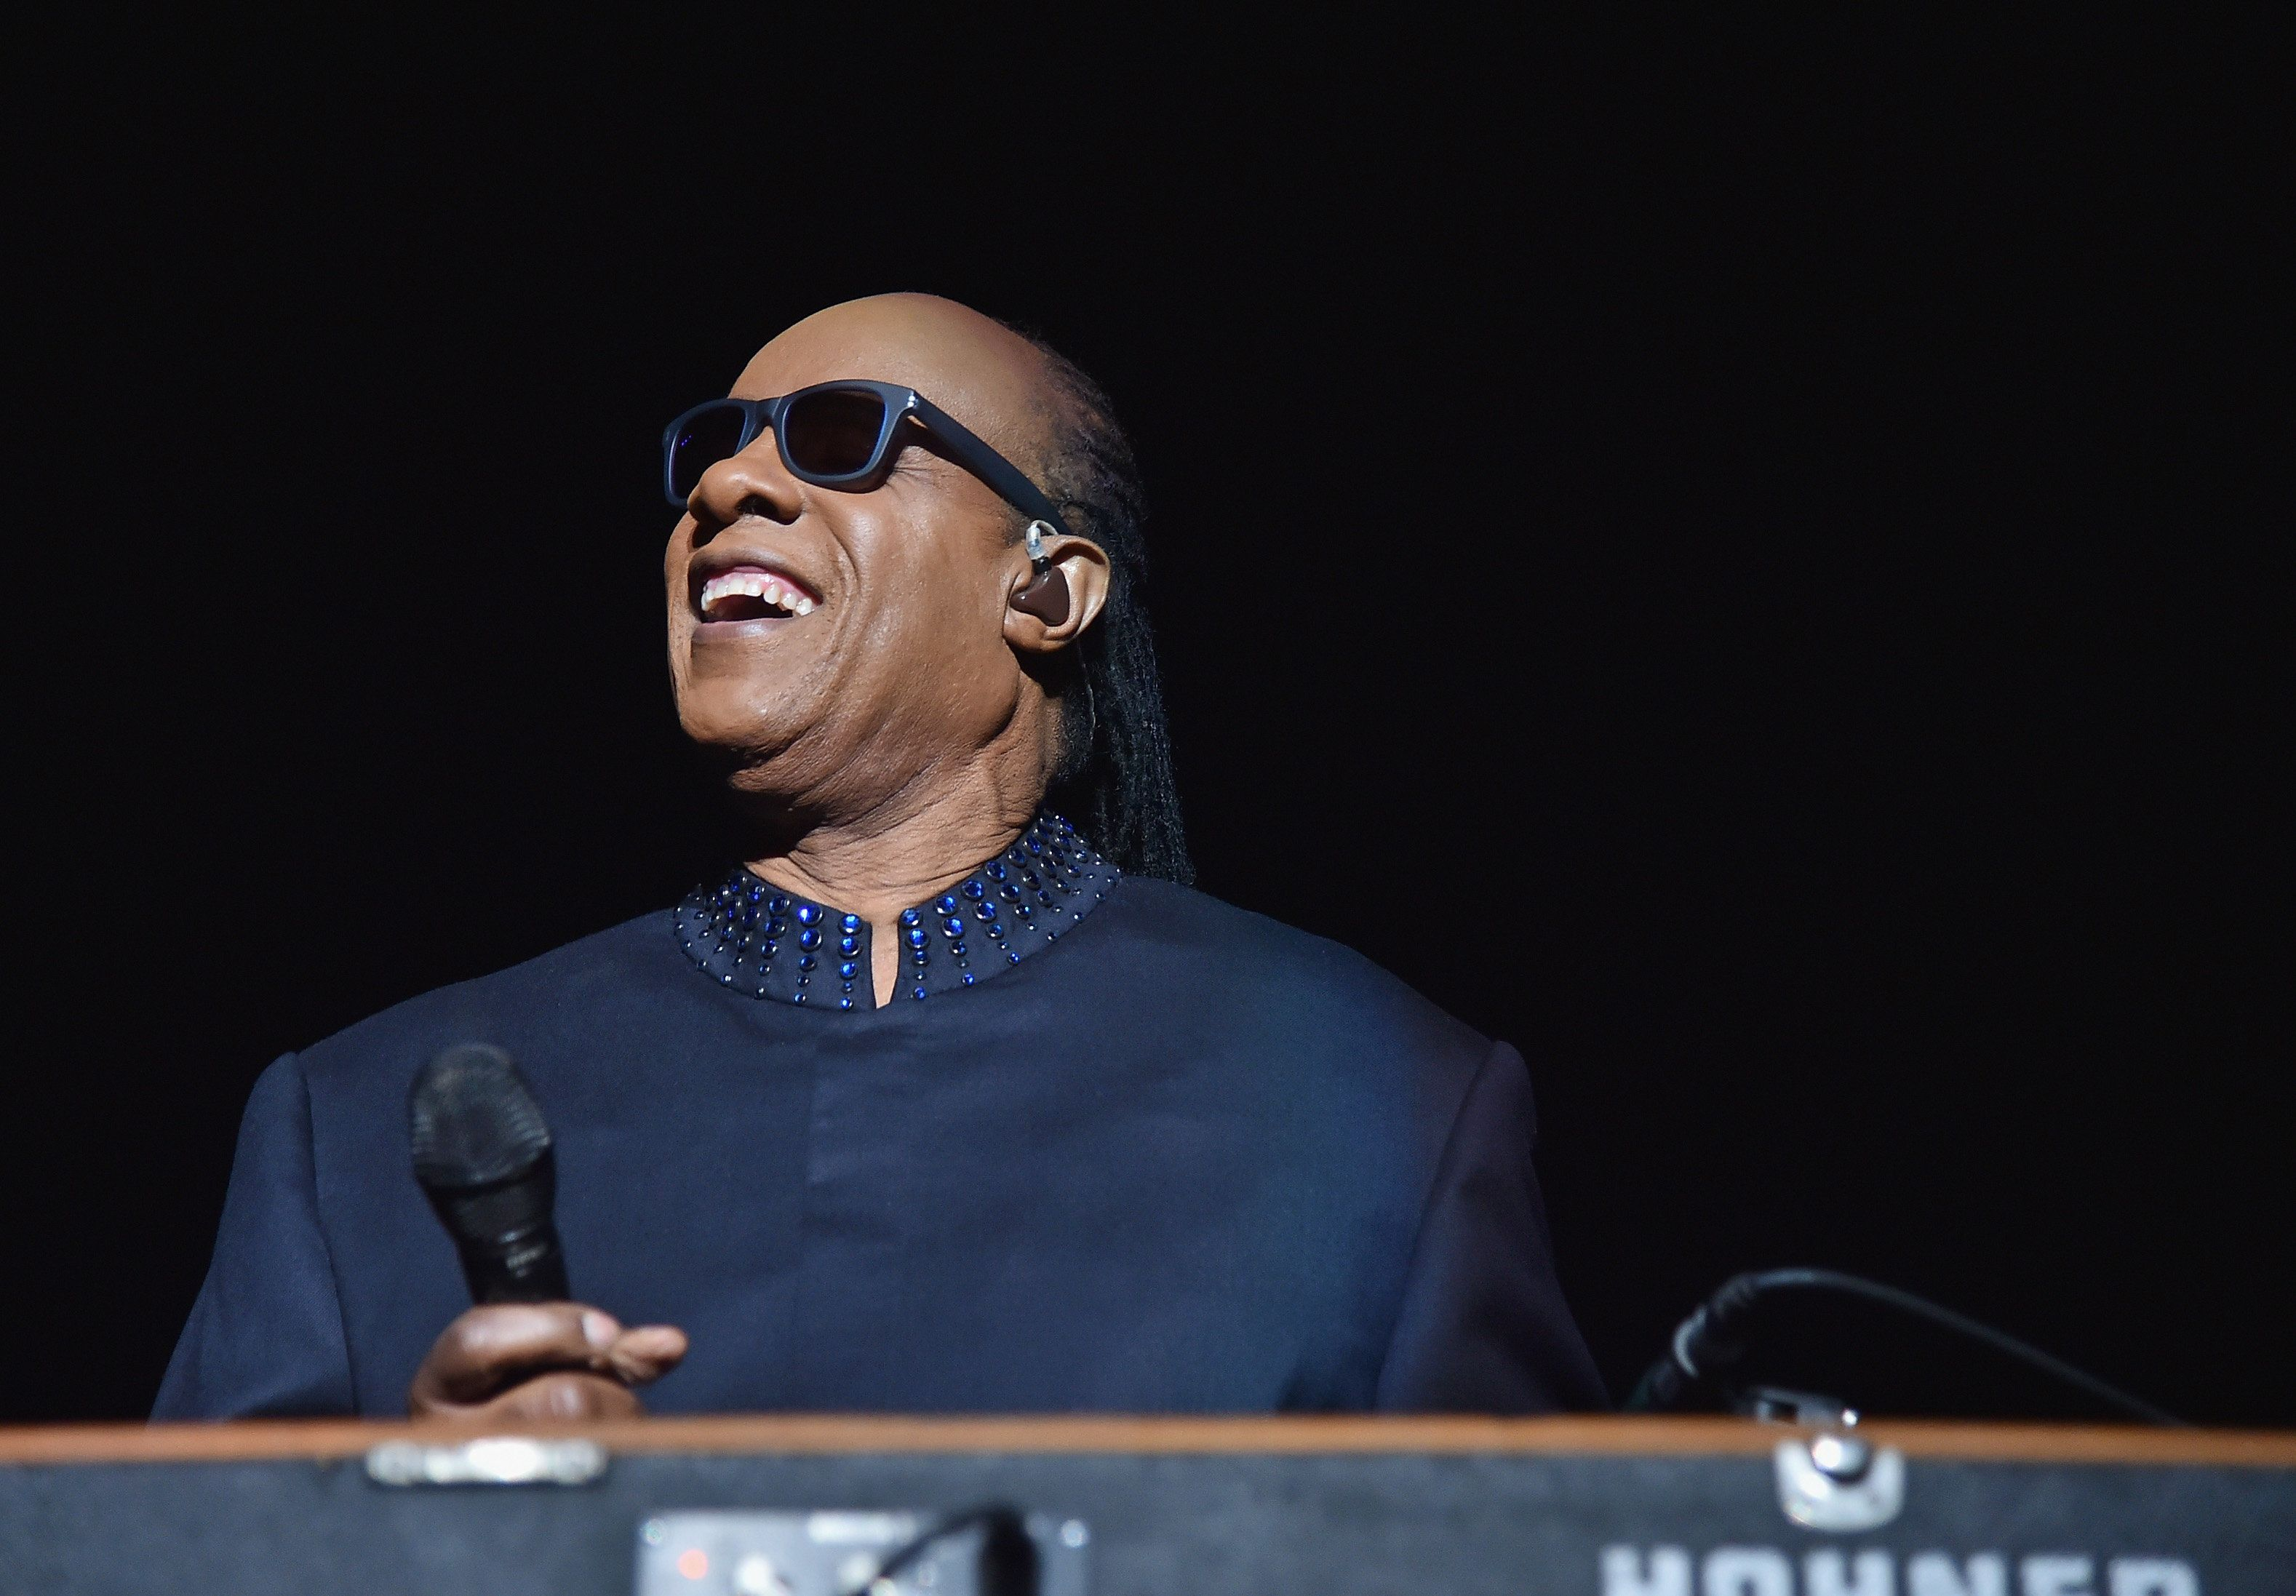 NEW YORK, NY - NOVEMBER 06:  Singer/songwriter Stevie Wonder performs on the first night of his Songs In The Key Of Life Tour at Madison Square Garden on November 6, 2014 in New York City.  (Photo by Mike Coppola/Getty Images)